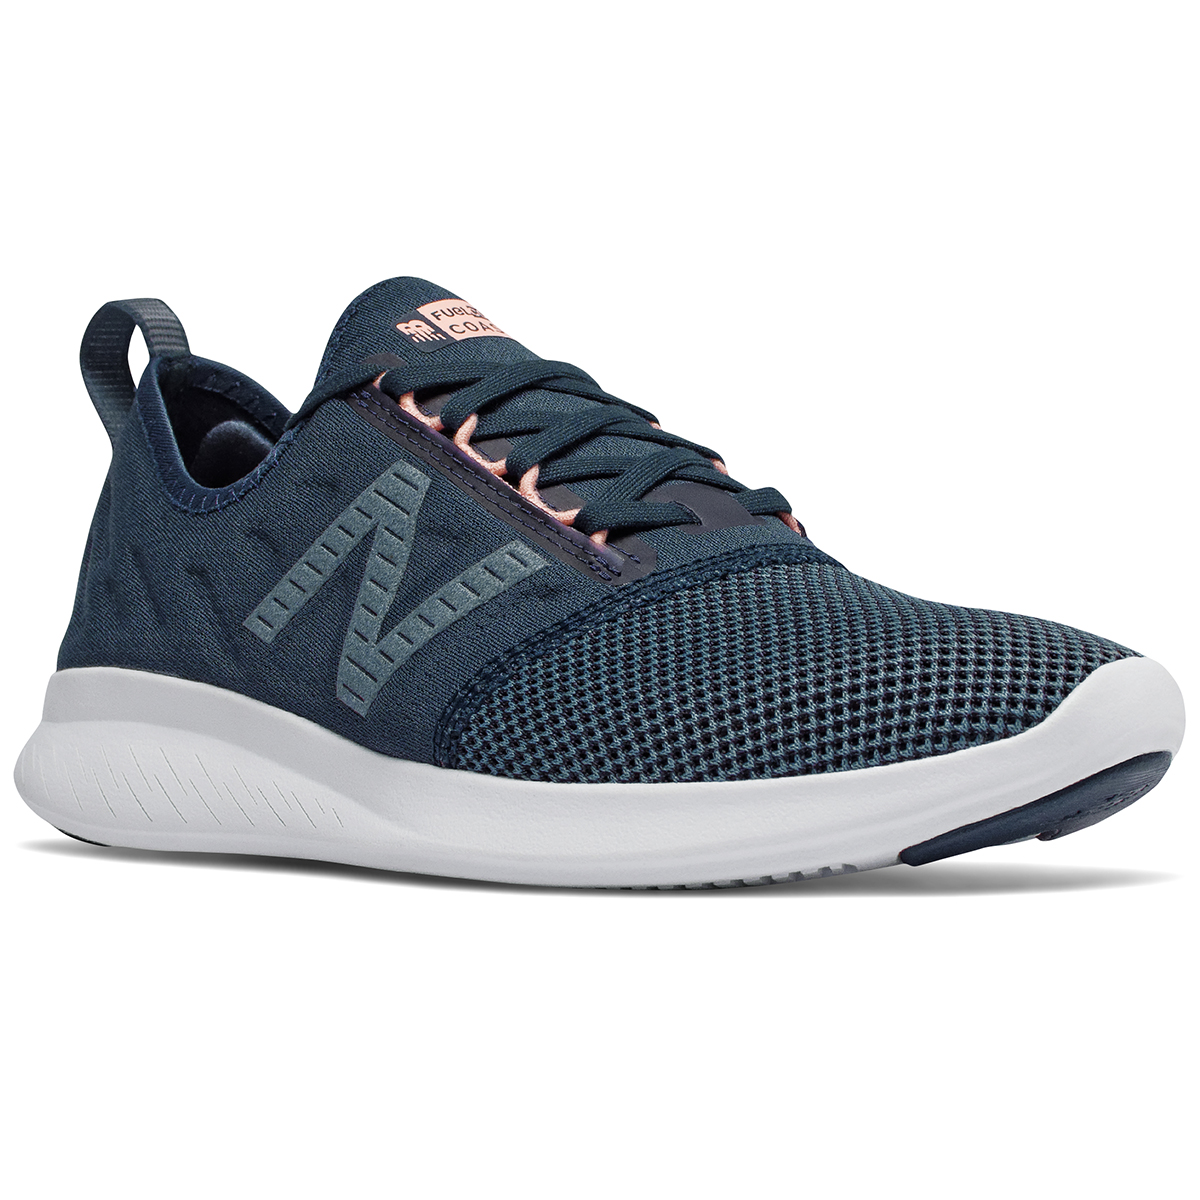 New Balance Women's Fuelcore Coast V4 Running Shoes - Blue, 7